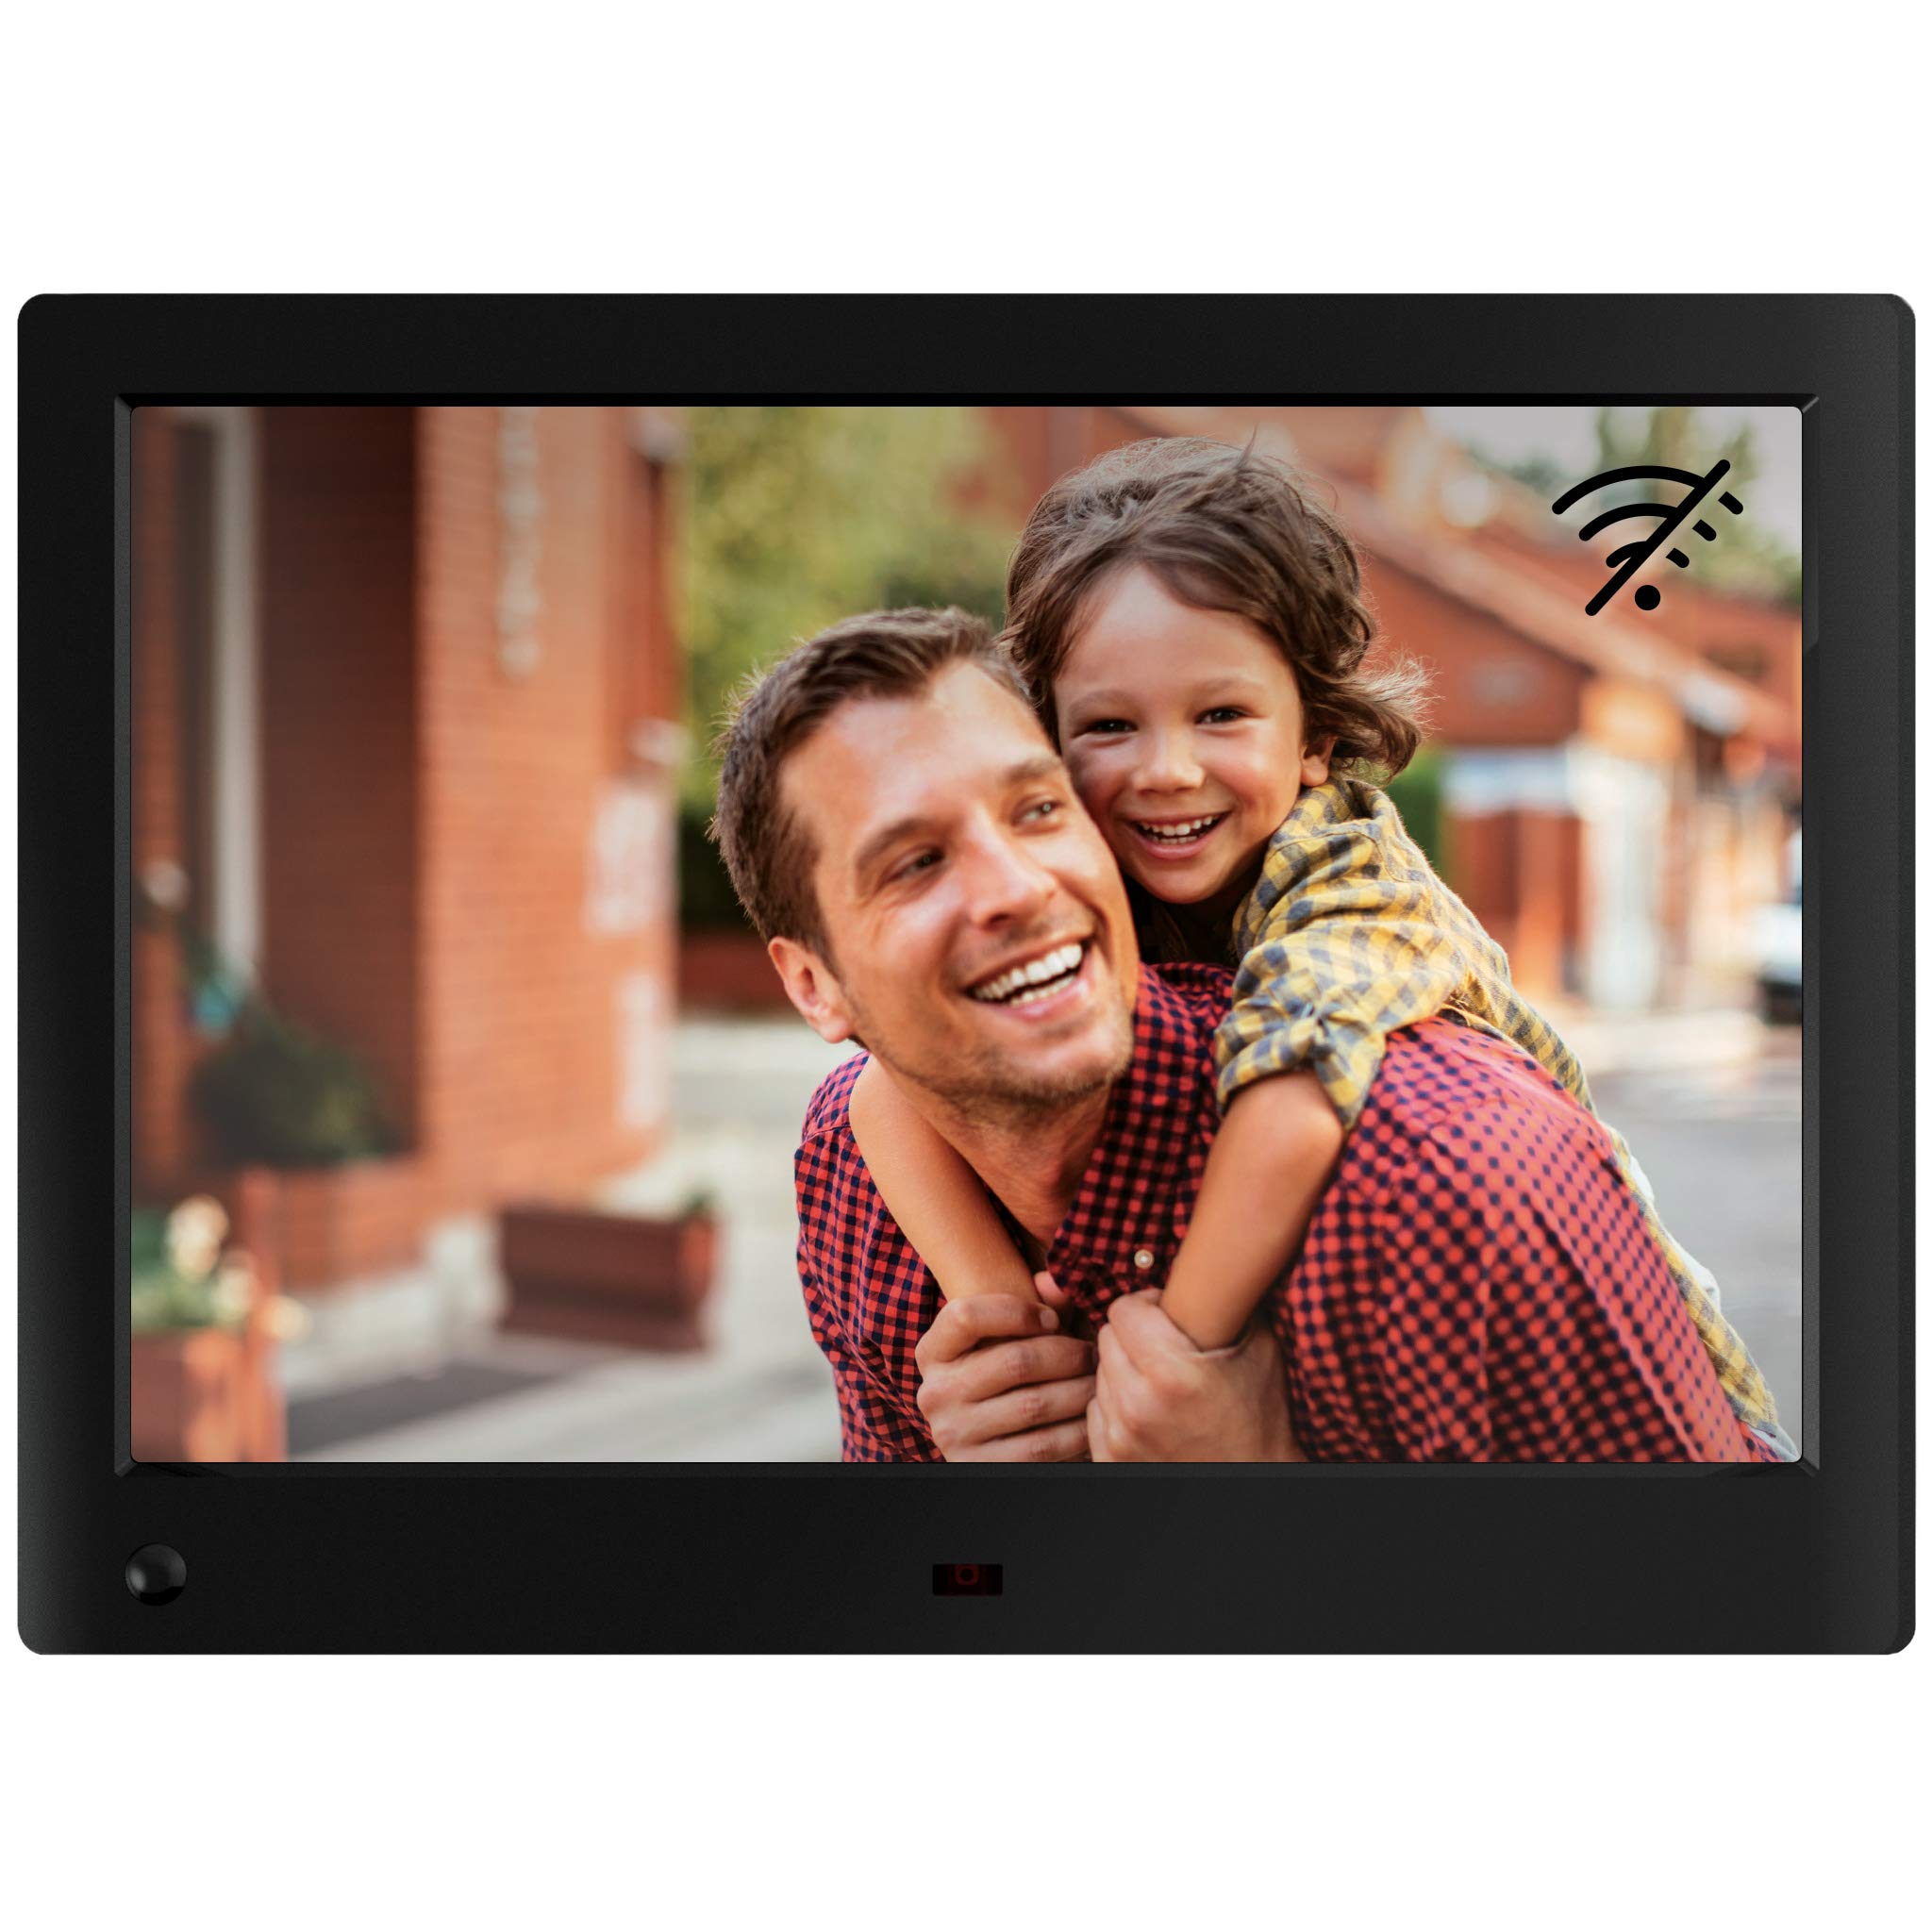 NIX Advance 10 Inch Digital Photo Frame (Non-WiFi) - HD Picture Frame 16:10 IPS Display, Motion Sensor, USB and SD Card Slots and Remote Control by NIX